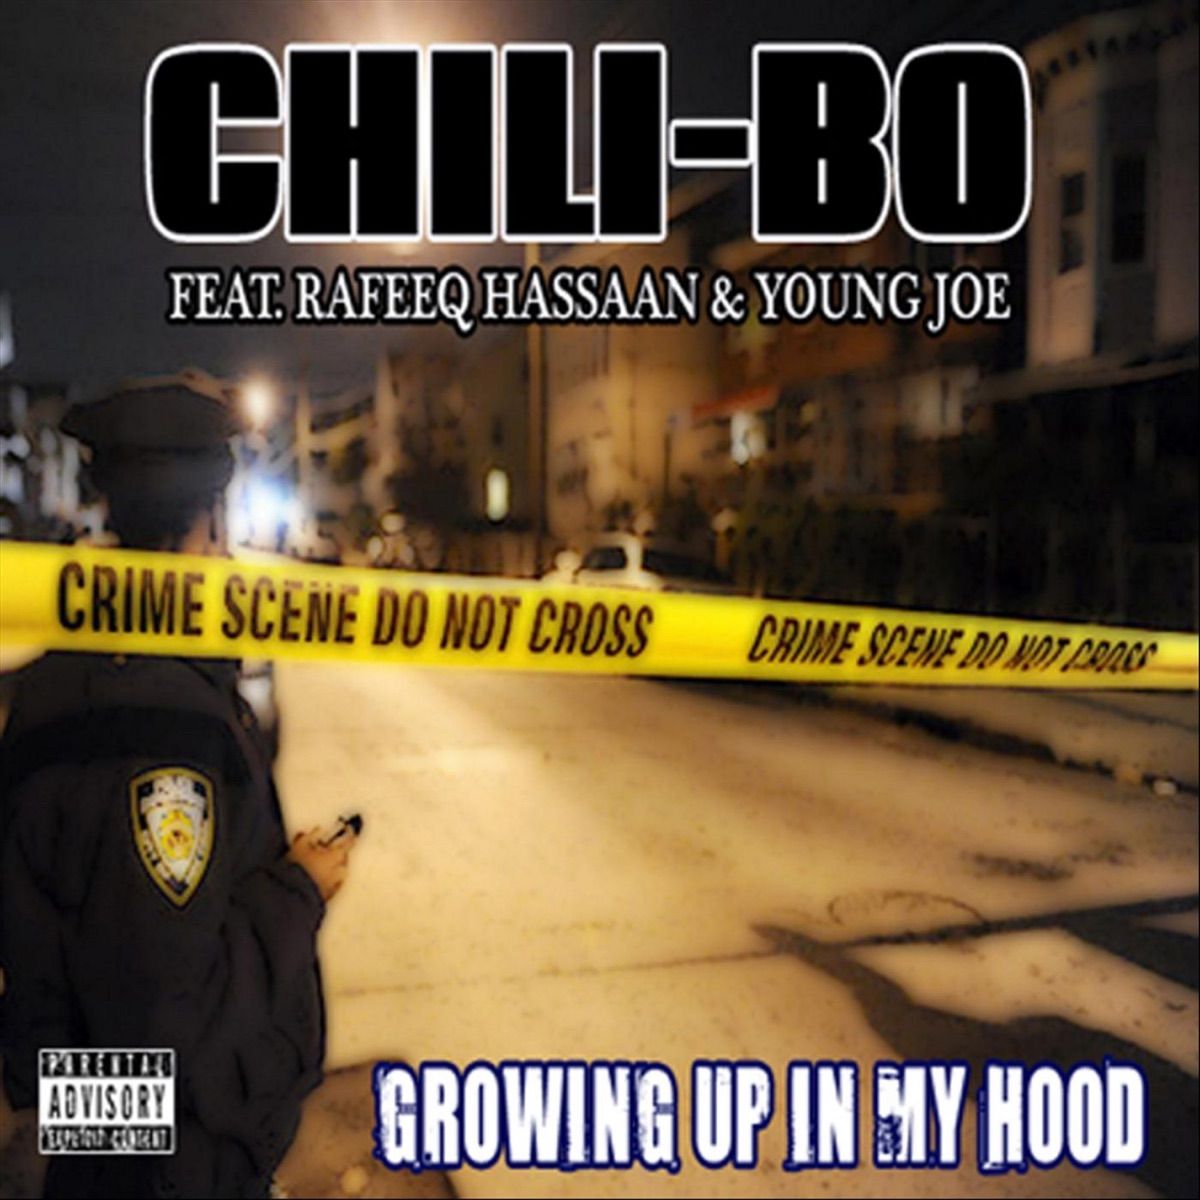 Growing Up in My Hood feat Rafeeq Hassaan  Young Joe - Single Chili-Bo CD cover